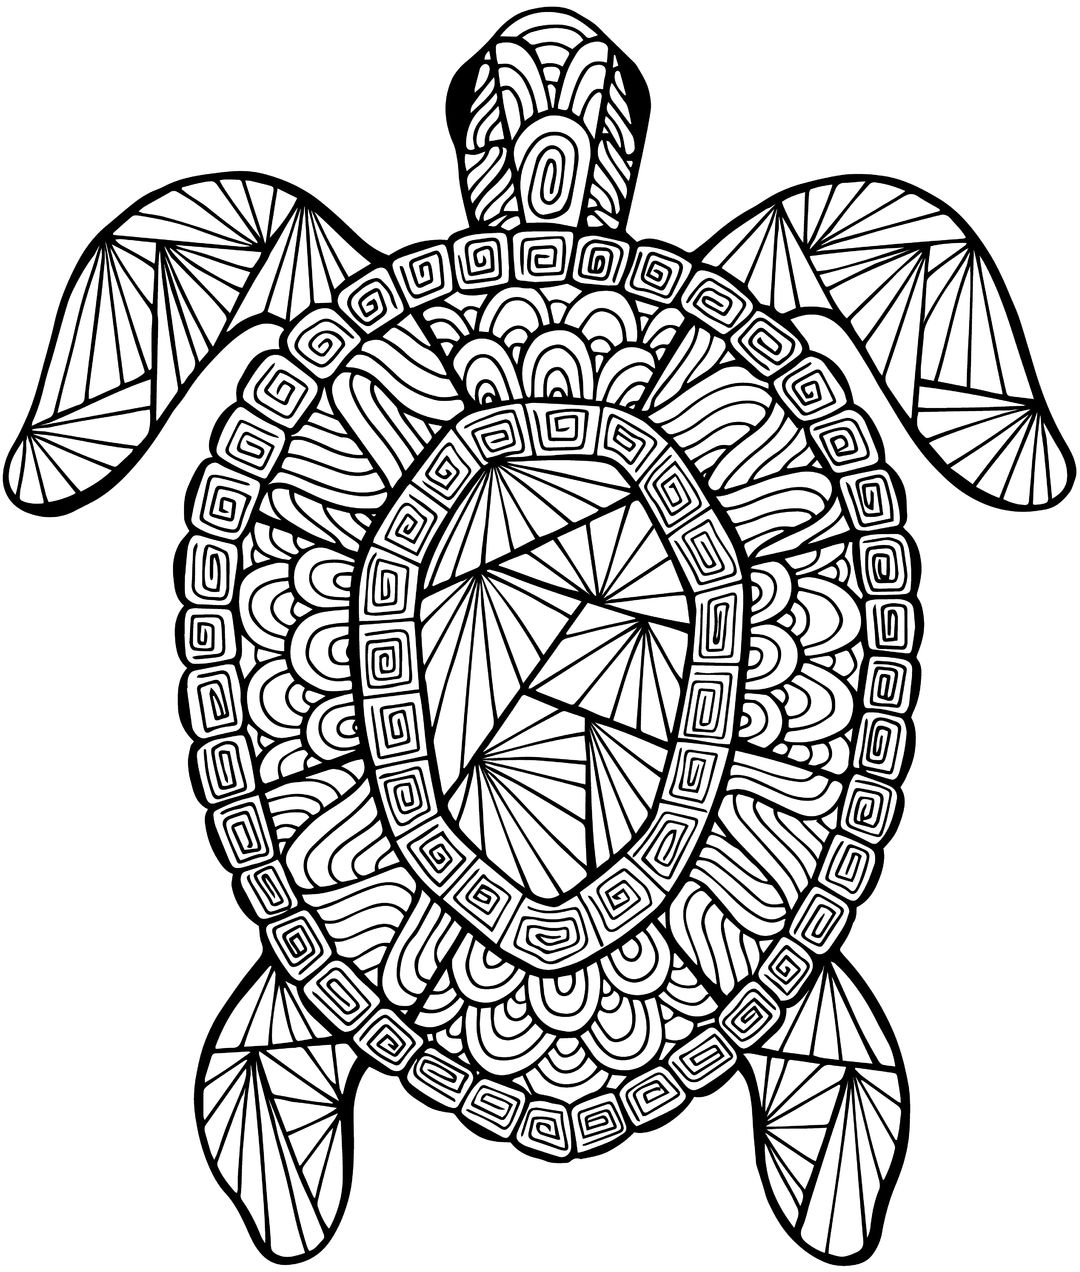 Detailed Sea Turtle Advanced Coloring Page